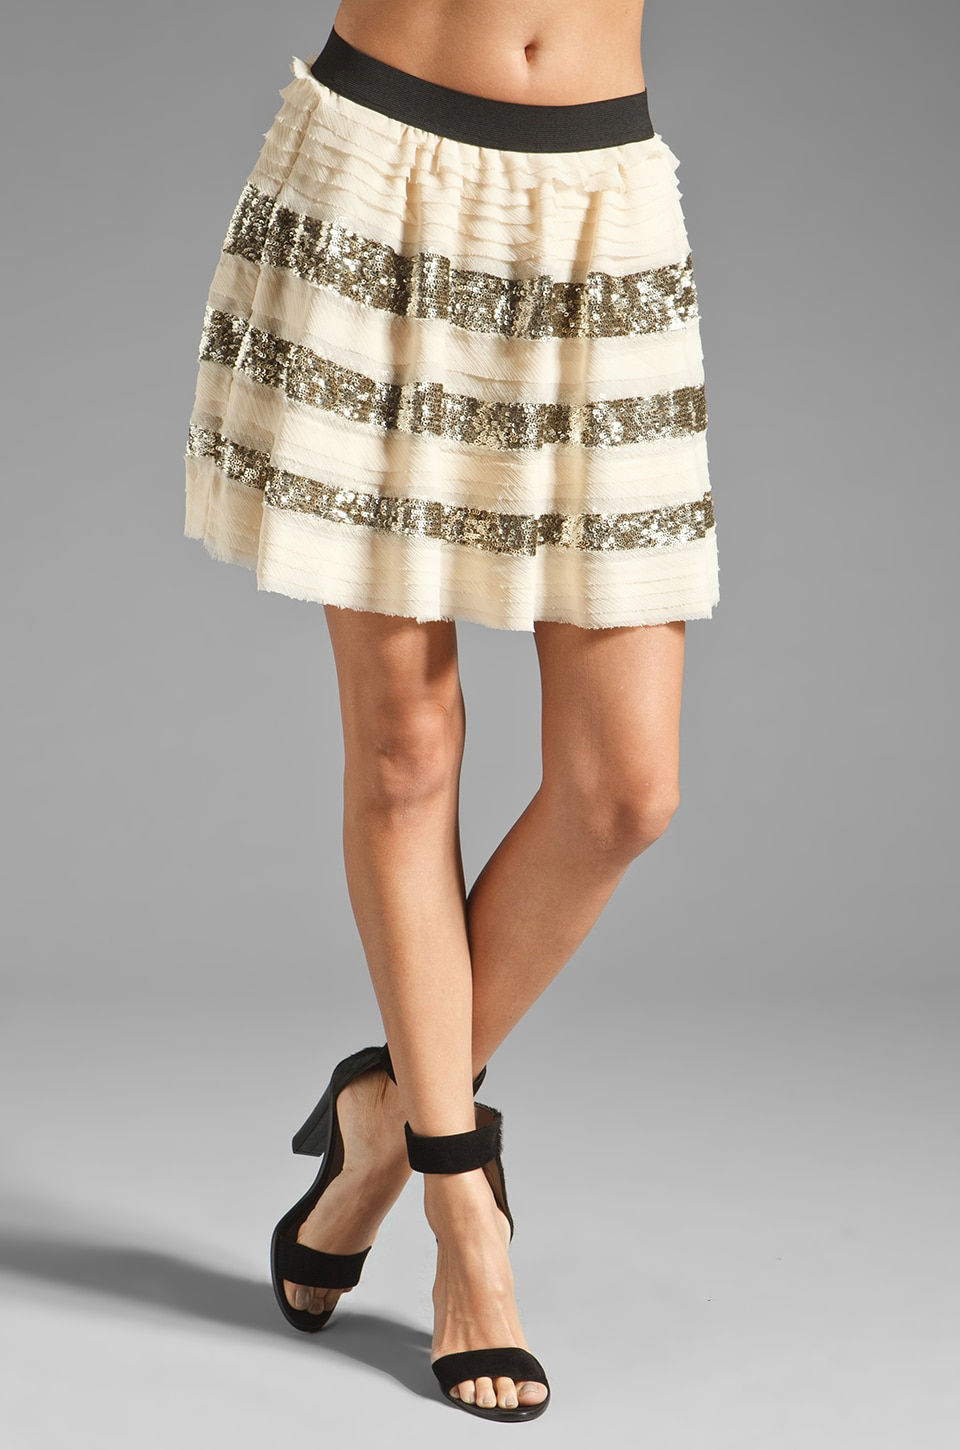 Free People Sparkle and Stripe Skirt in Champagne Combo